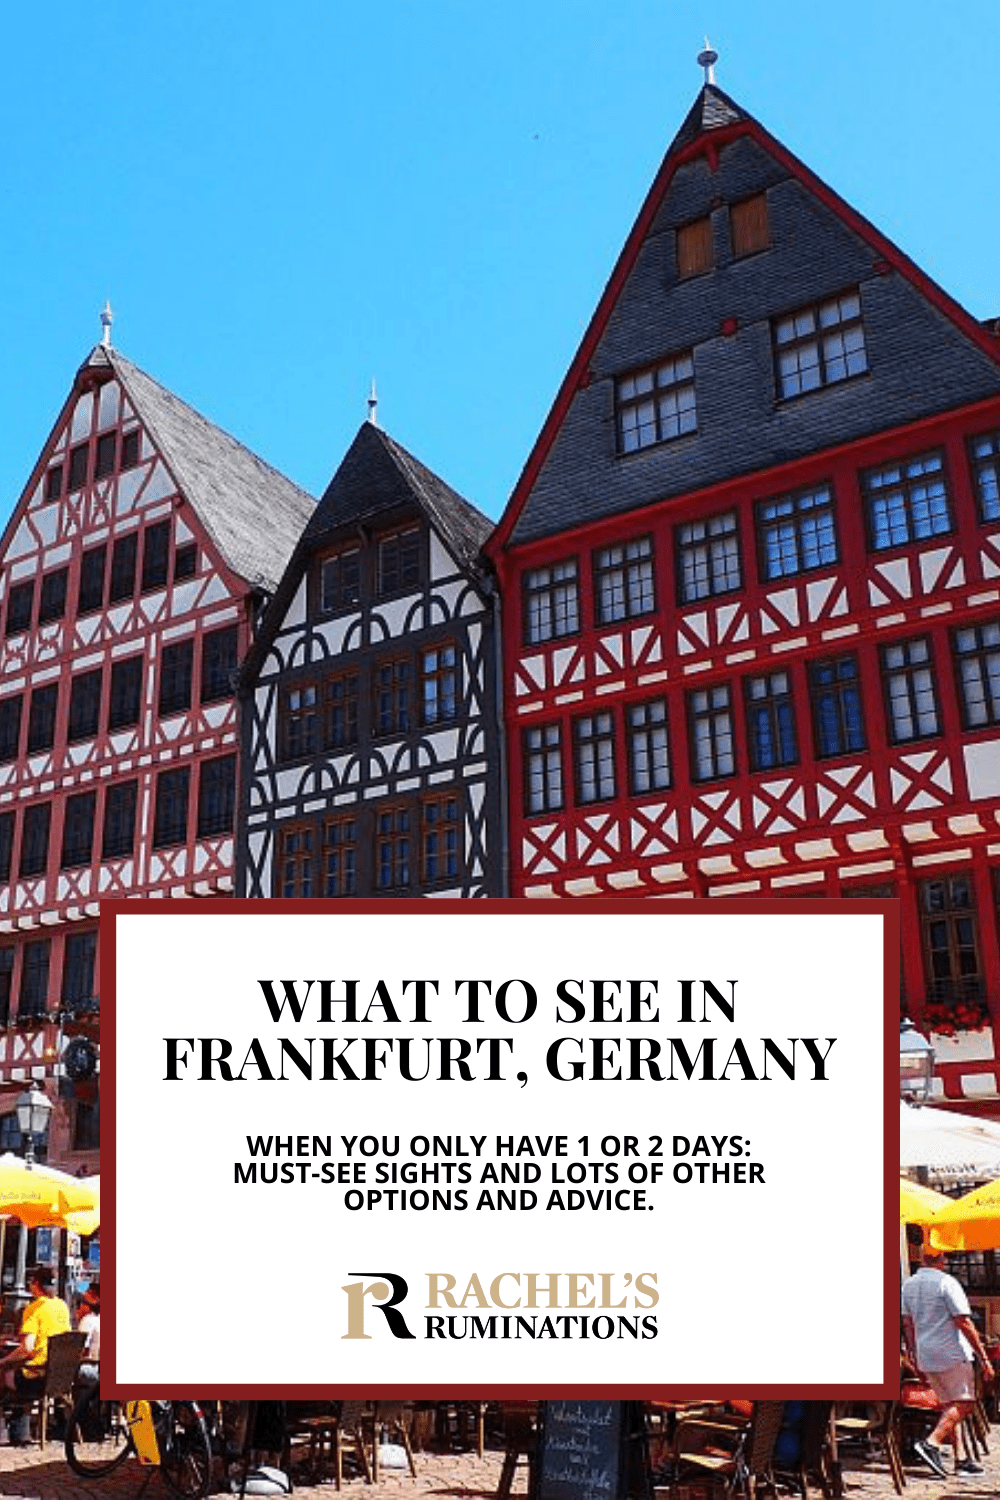 You'll only have a short time in Frankfurt? This article will help you decide what to see in Frankfurt in 1-2 days: must-sees and lots more options and ideas so you can make the best of a short city trip! via @rachelsruminations